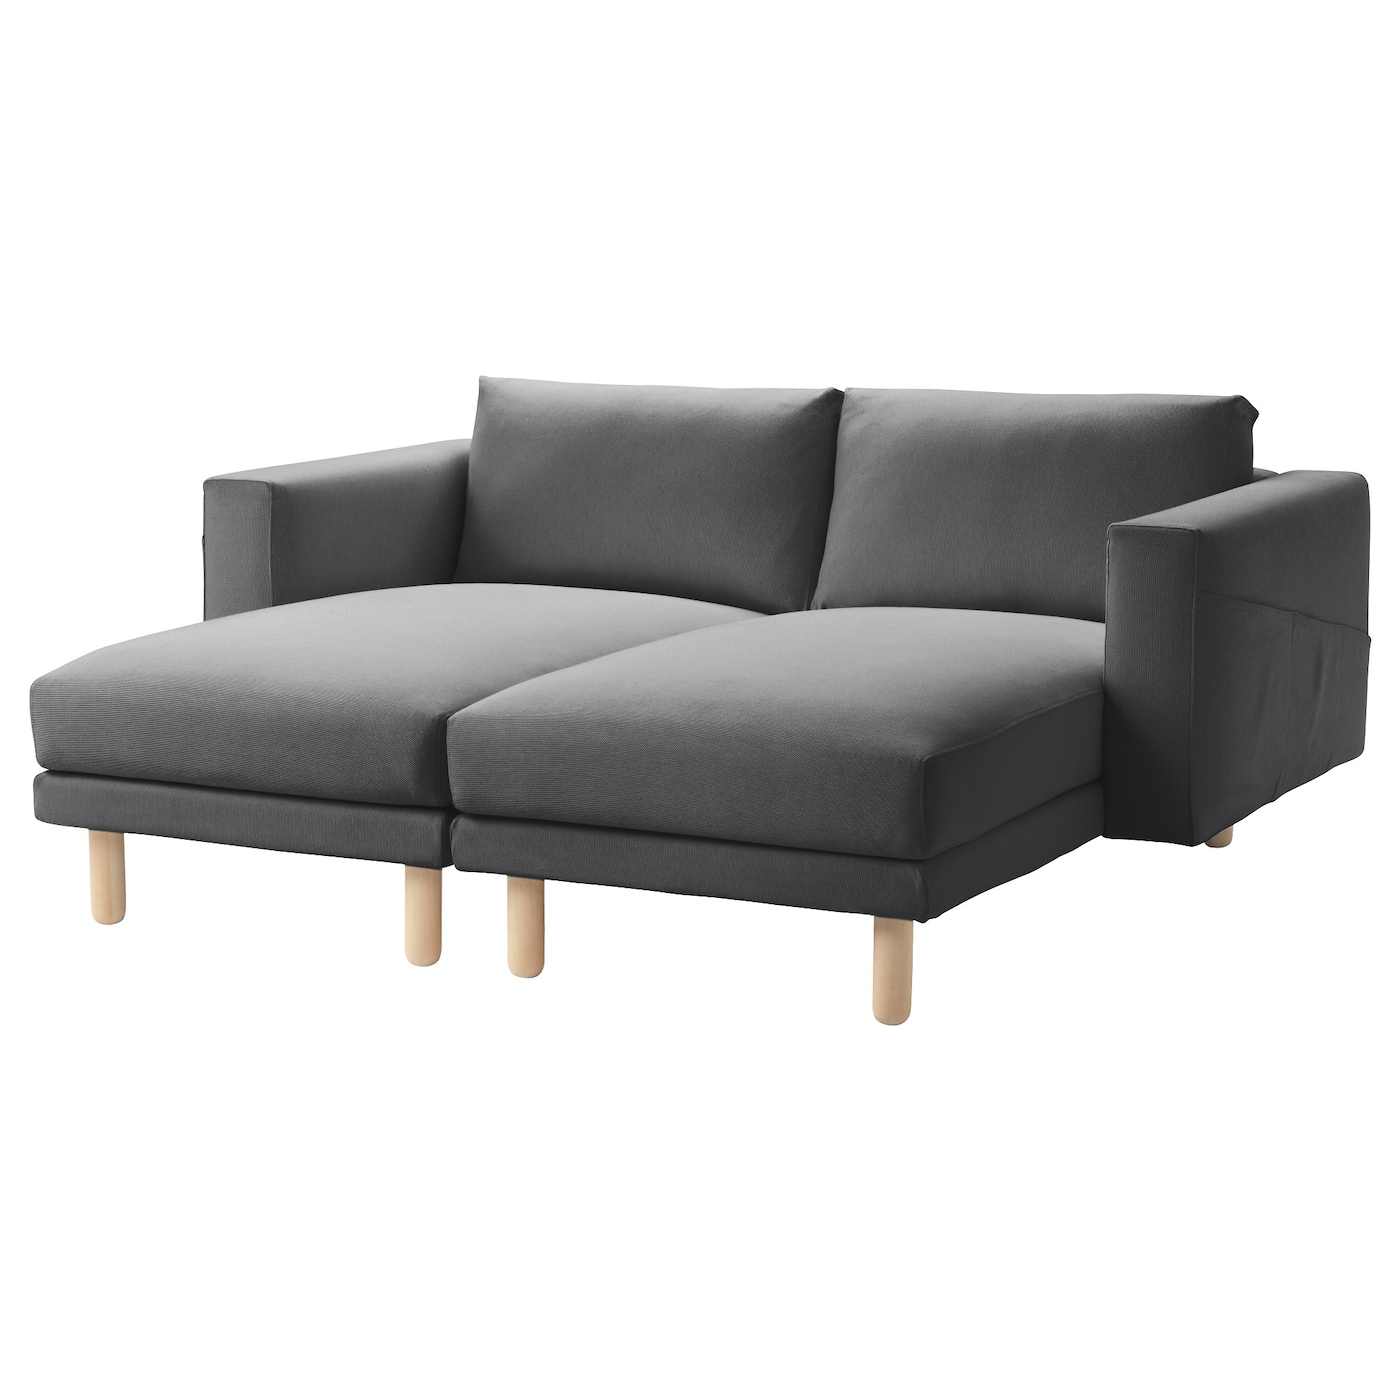 norsborg 2 chaise longues finnsta dark grey birch ikea